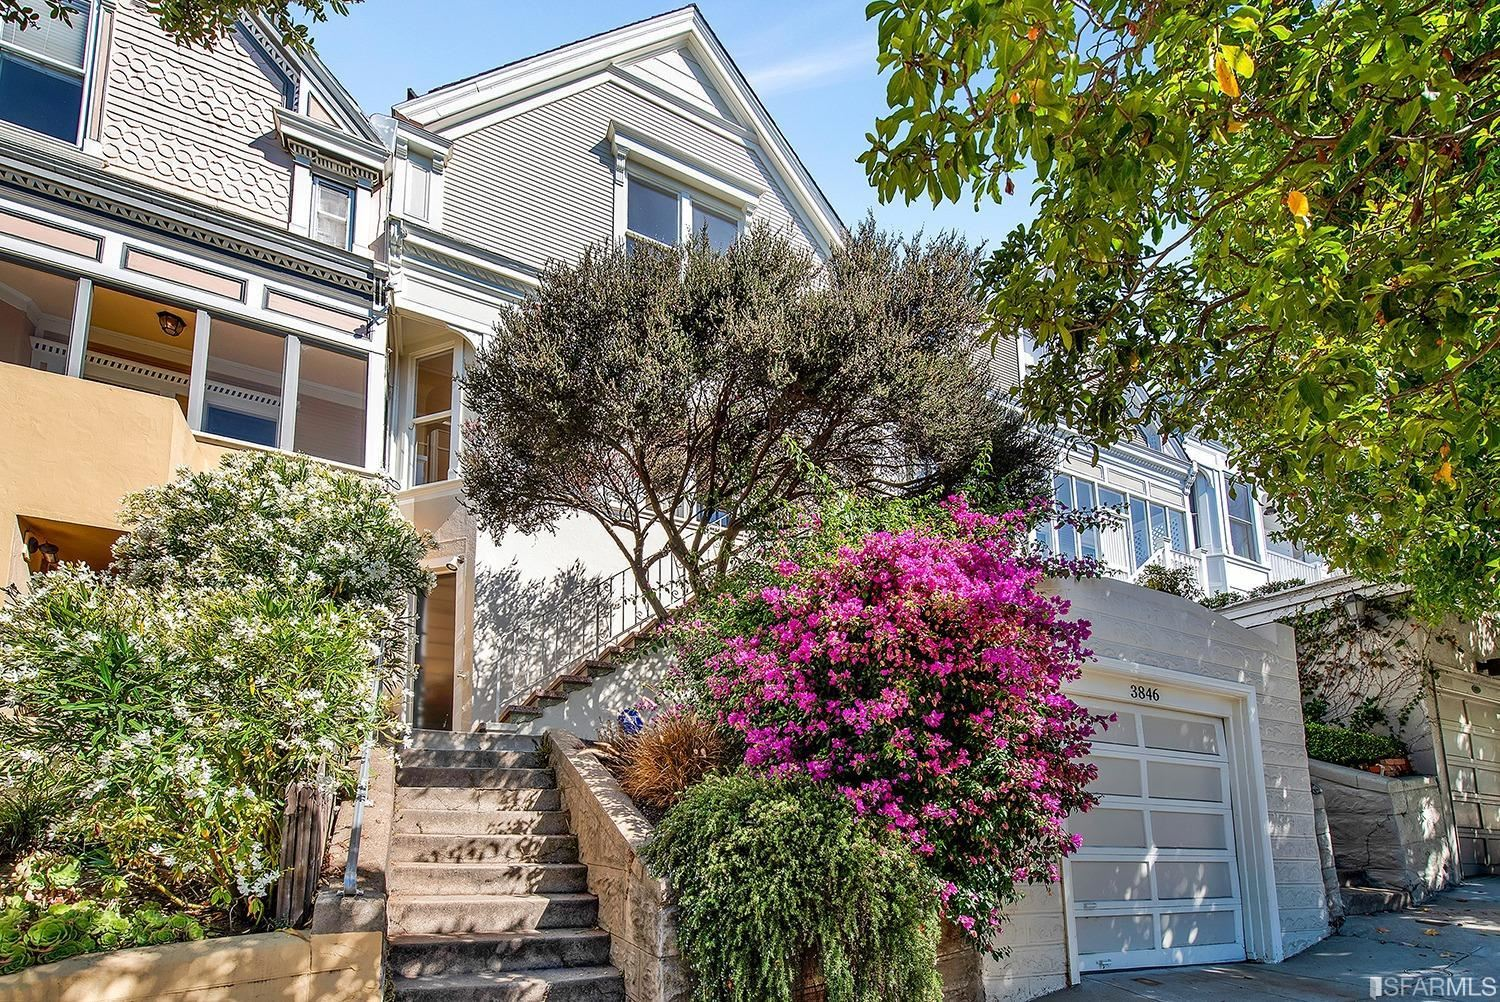 3846 25th Street, San Francisco, CA 94114 - #: 494686